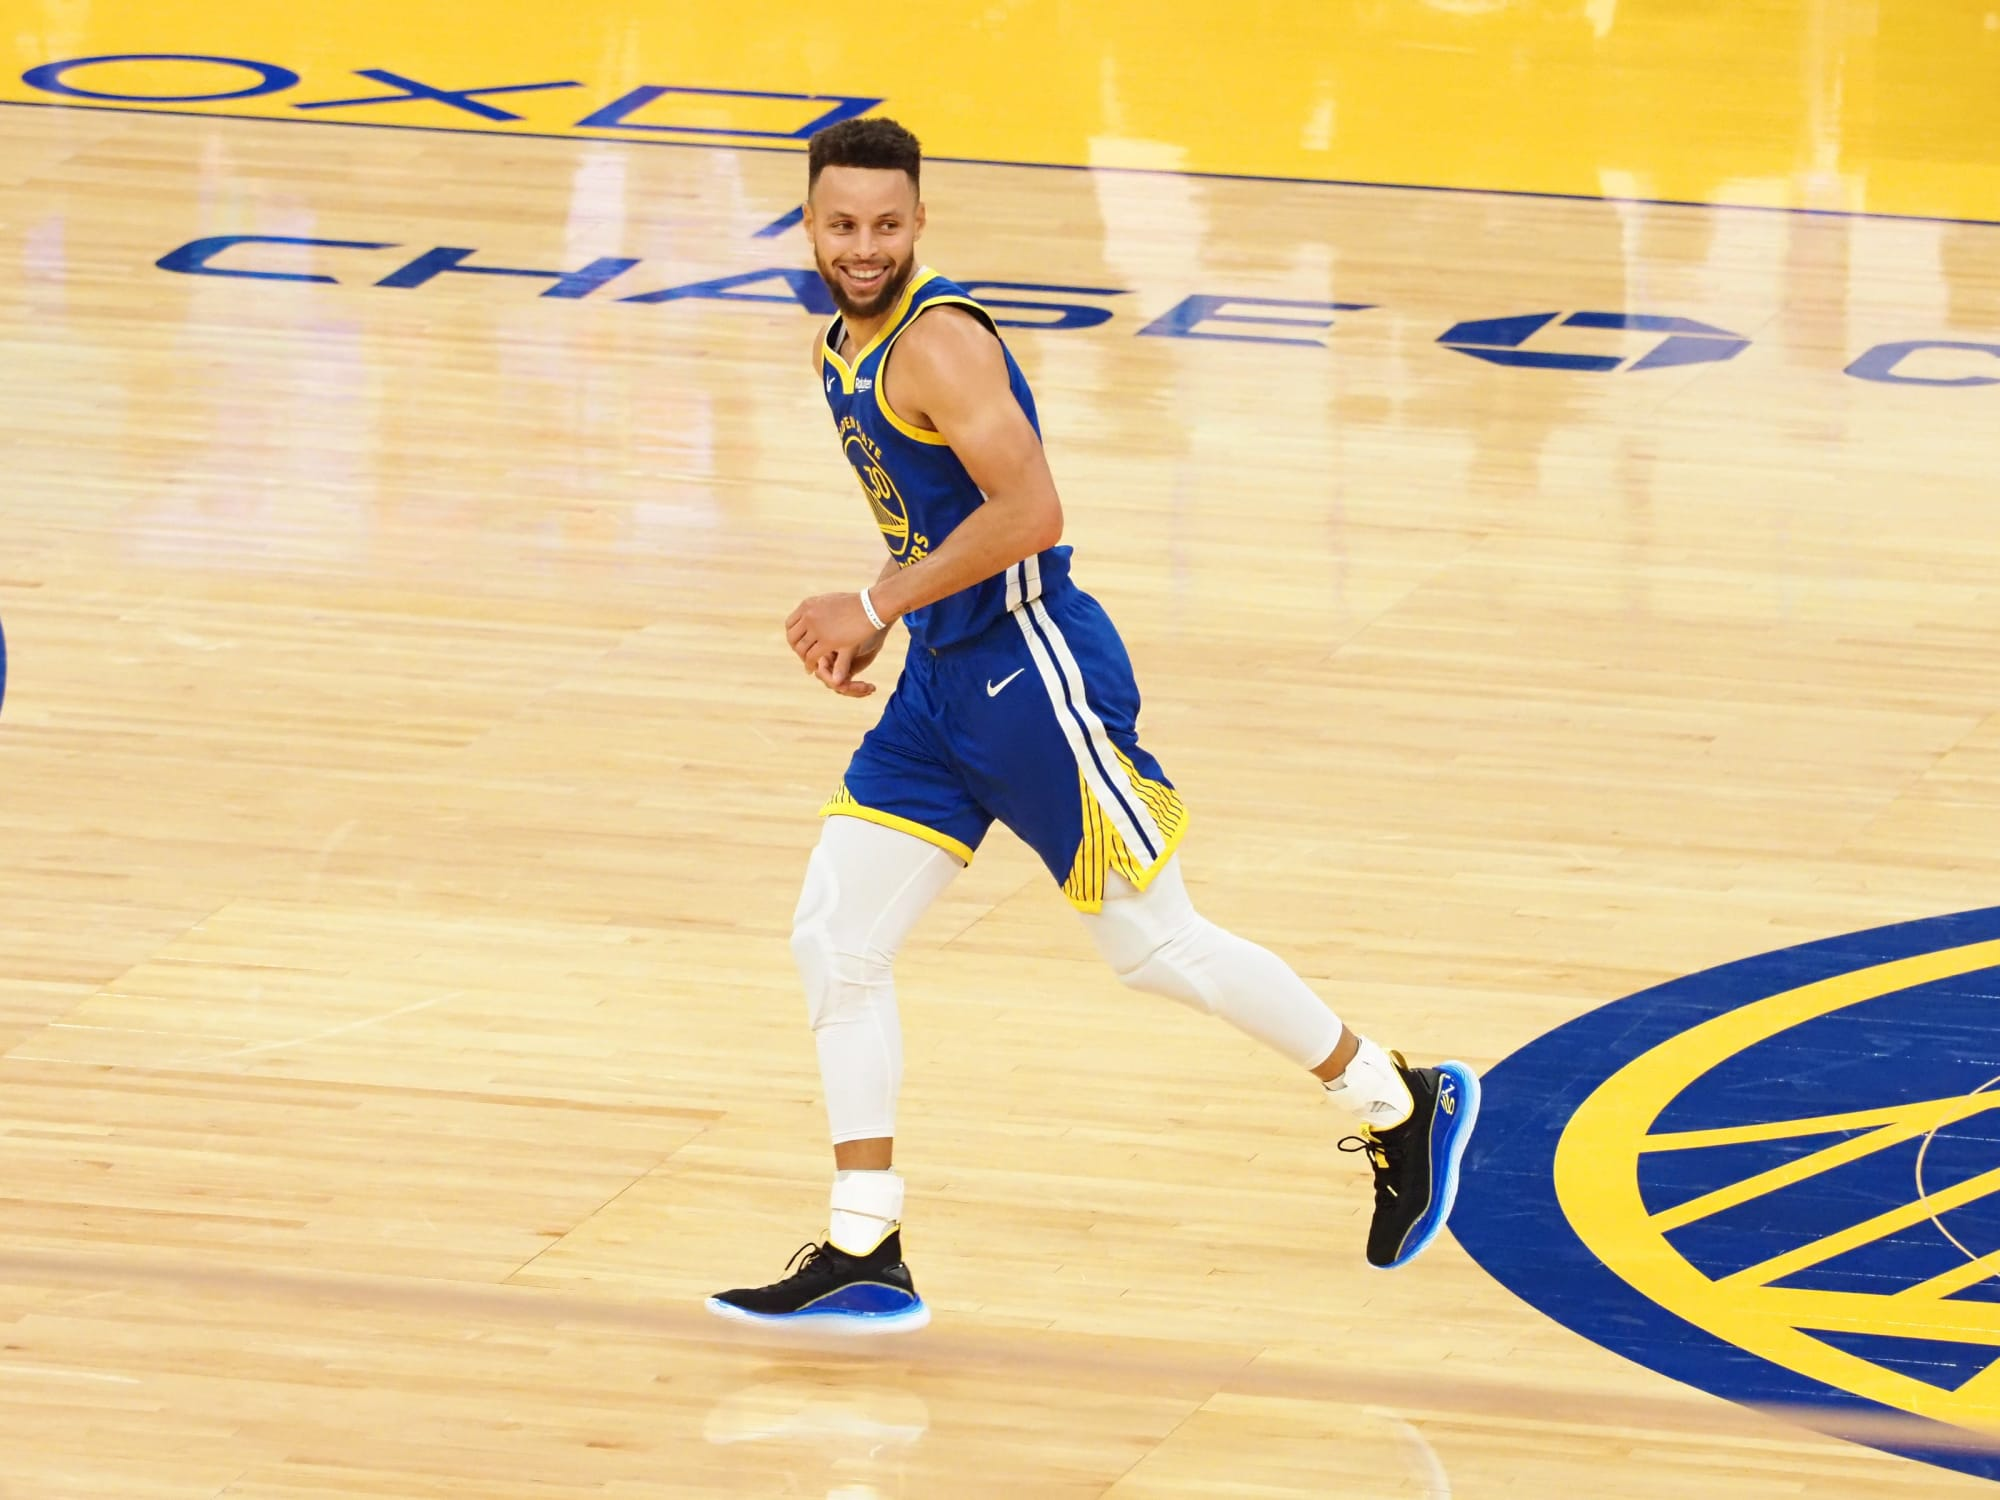 Steph Curry joins Michael Jordan in exclusive scoring category